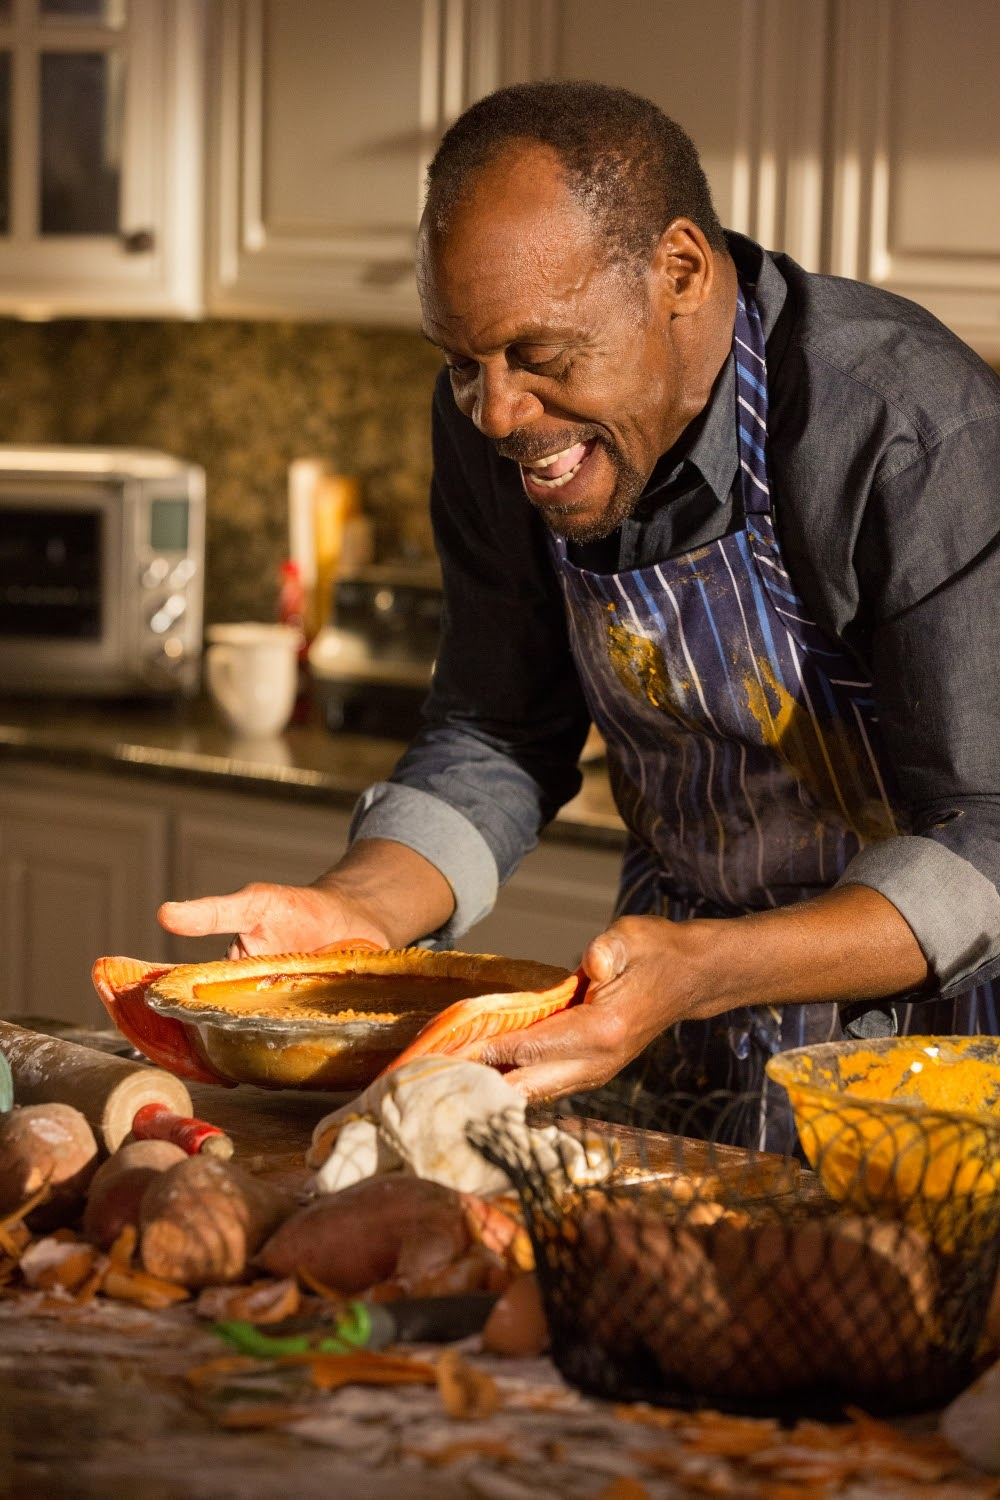 Danny Glover in ALMOST CHRISTMAS. (Photo by Quantrell D. Colbert / courtesy of Universal Pictures).